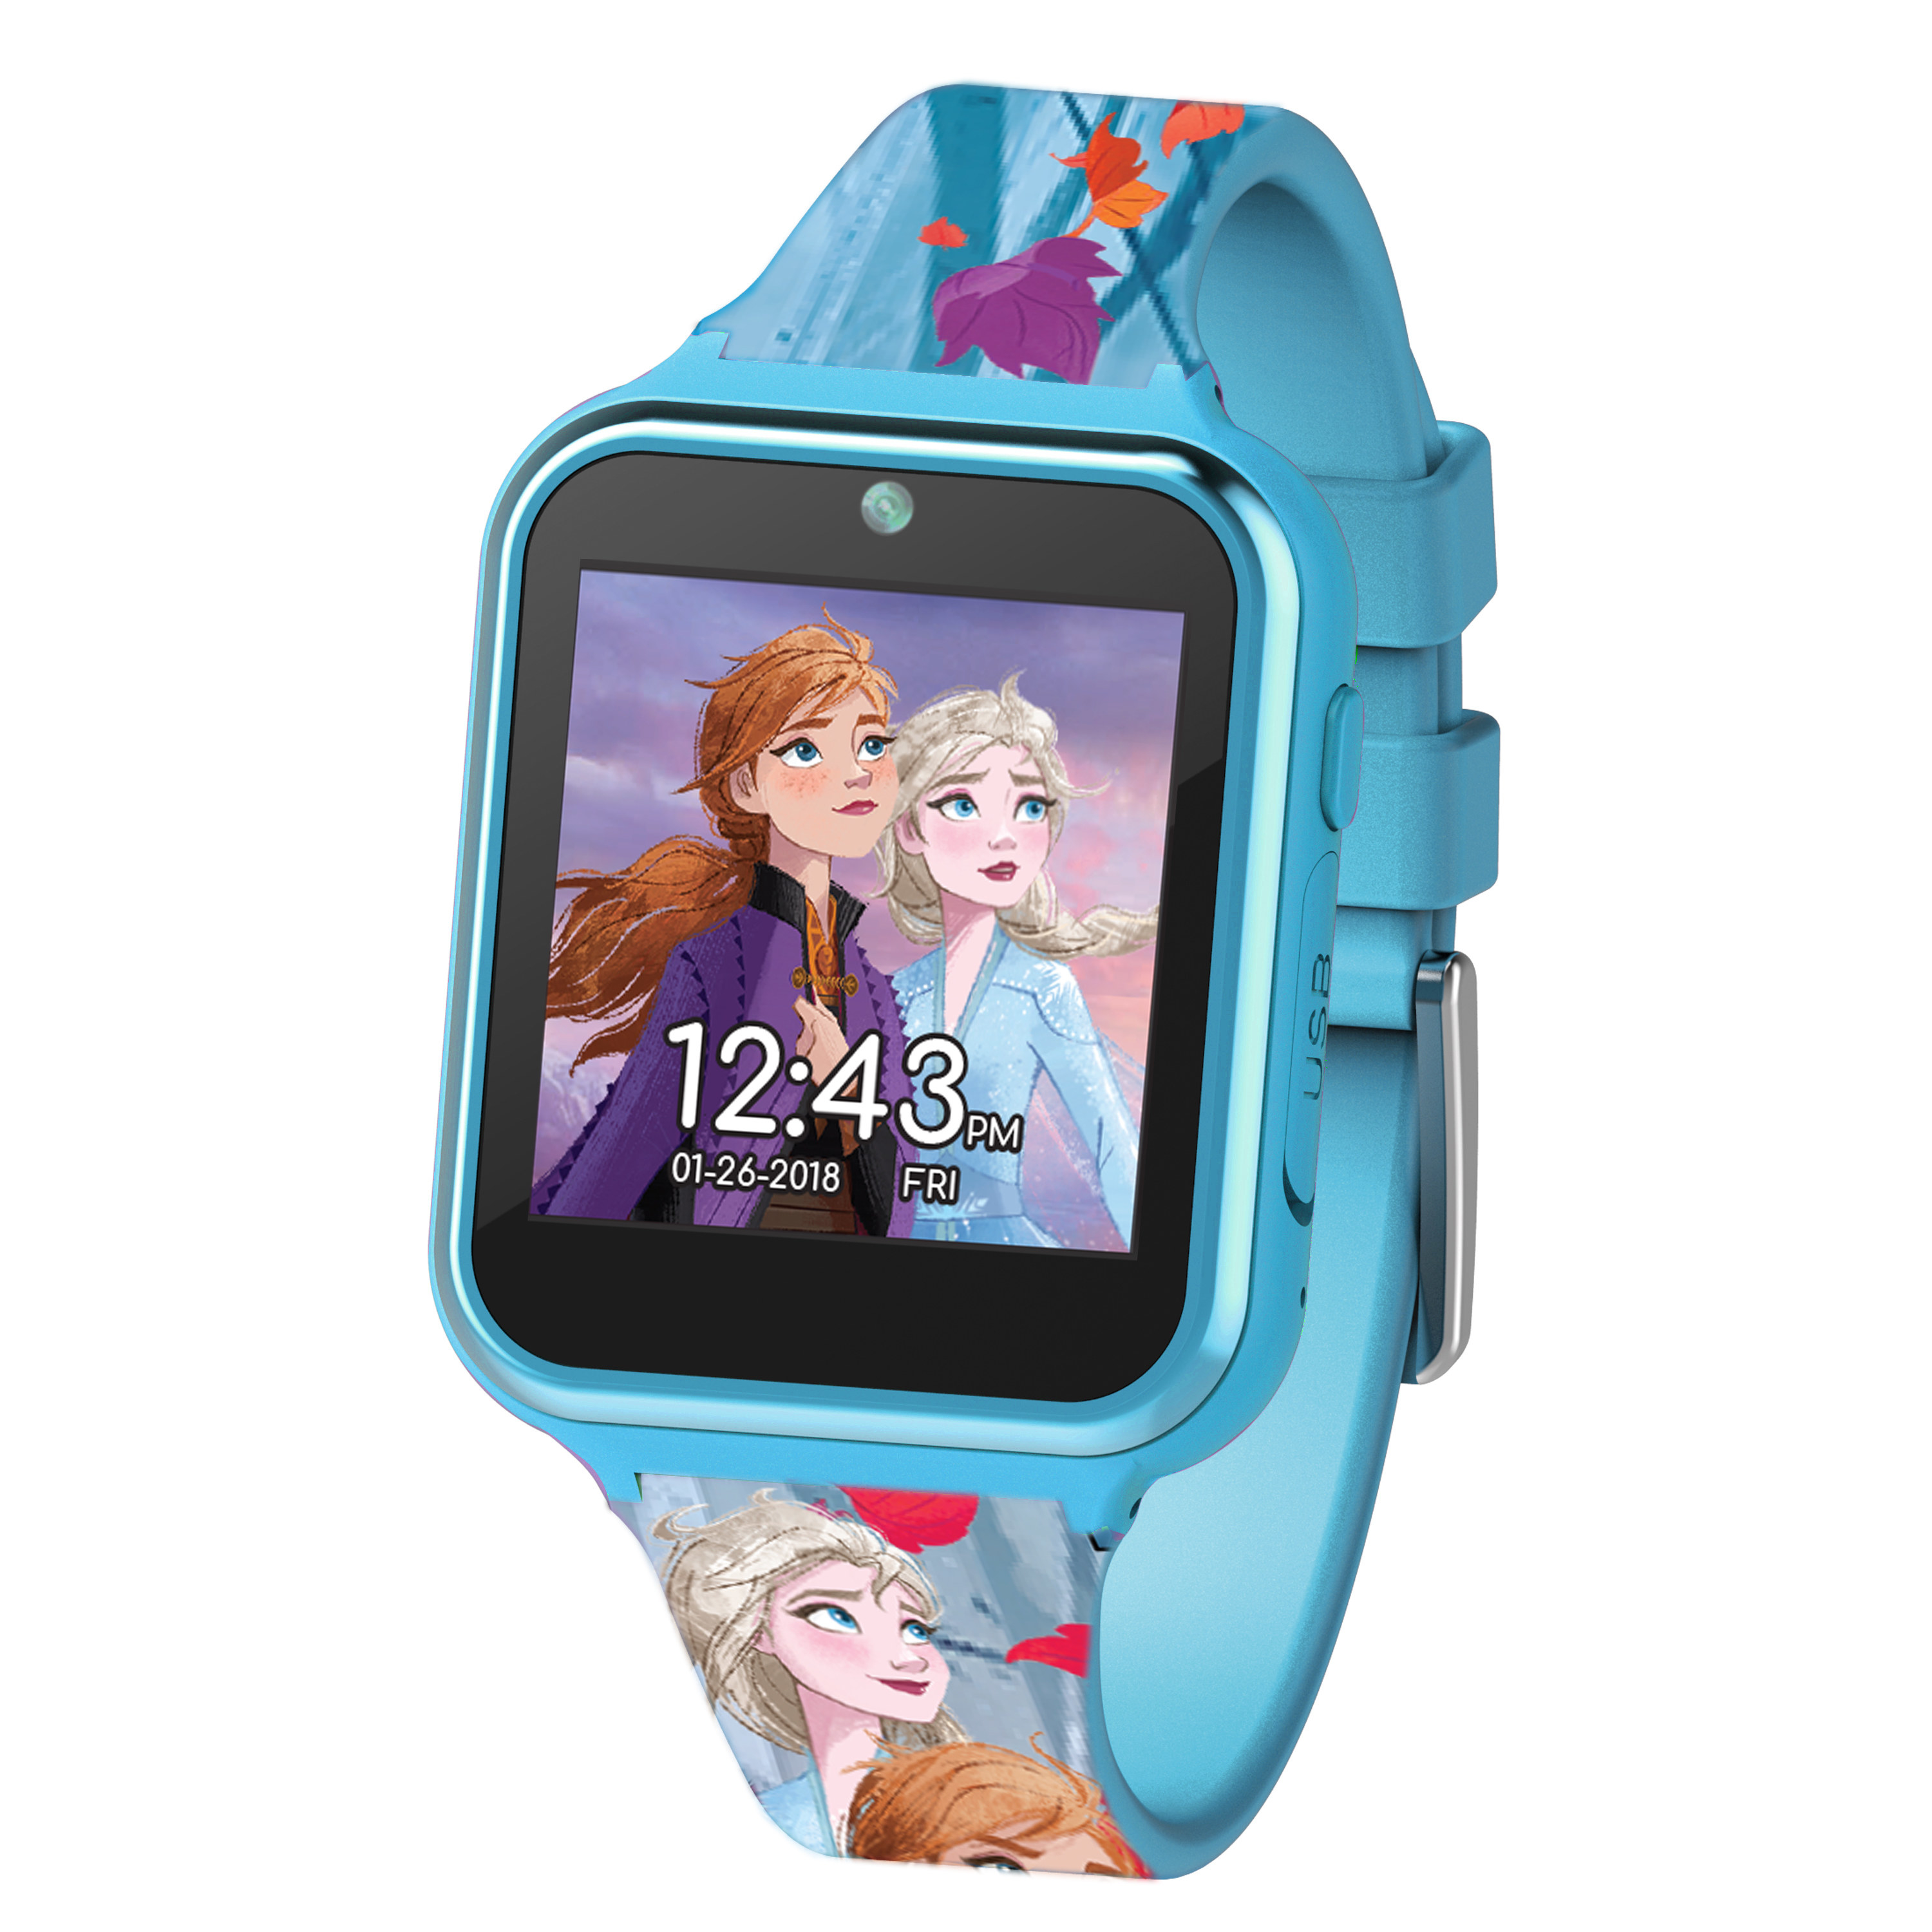 A blue smart watch with the characters Anna and Elsa on the screen and the band